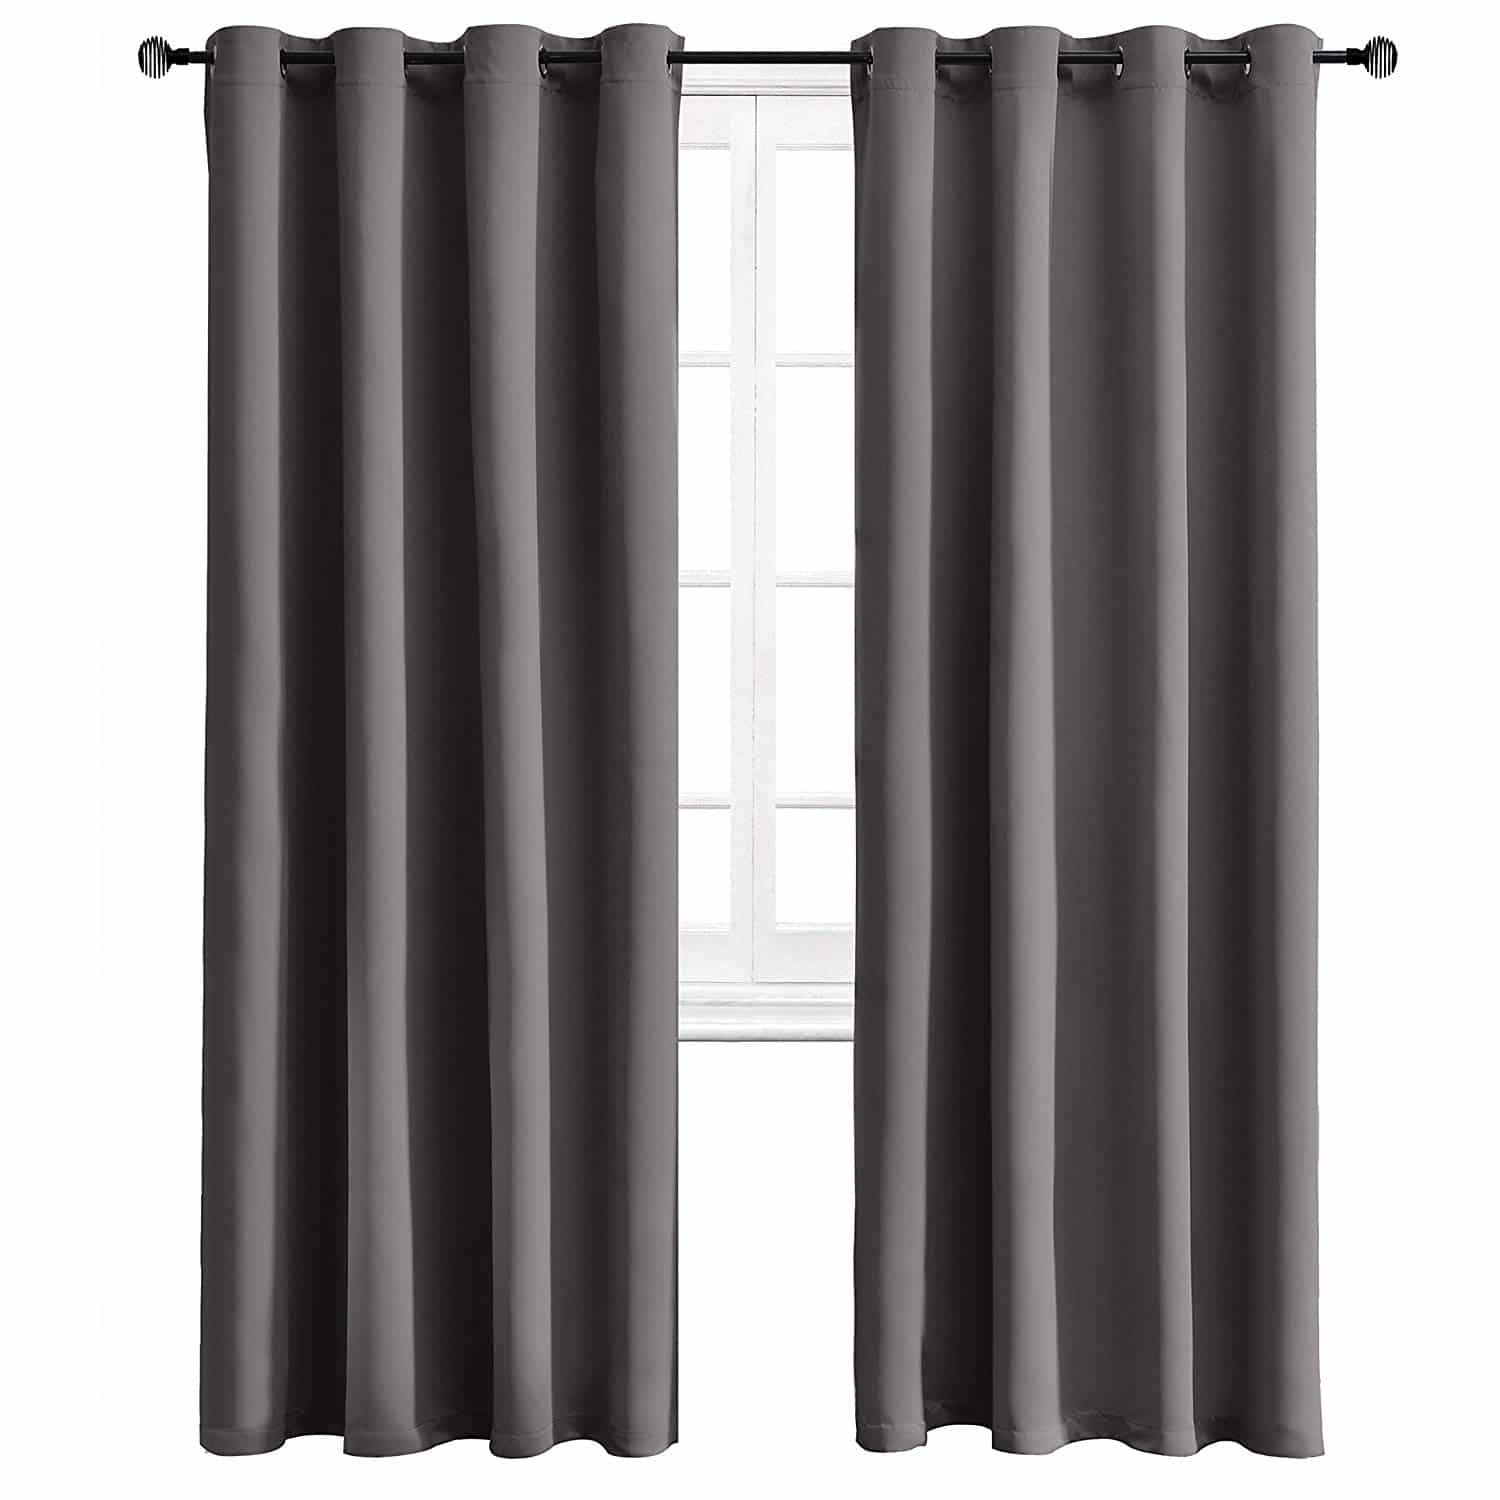 Curtains that keep the cold out by Wontex grey with grommets